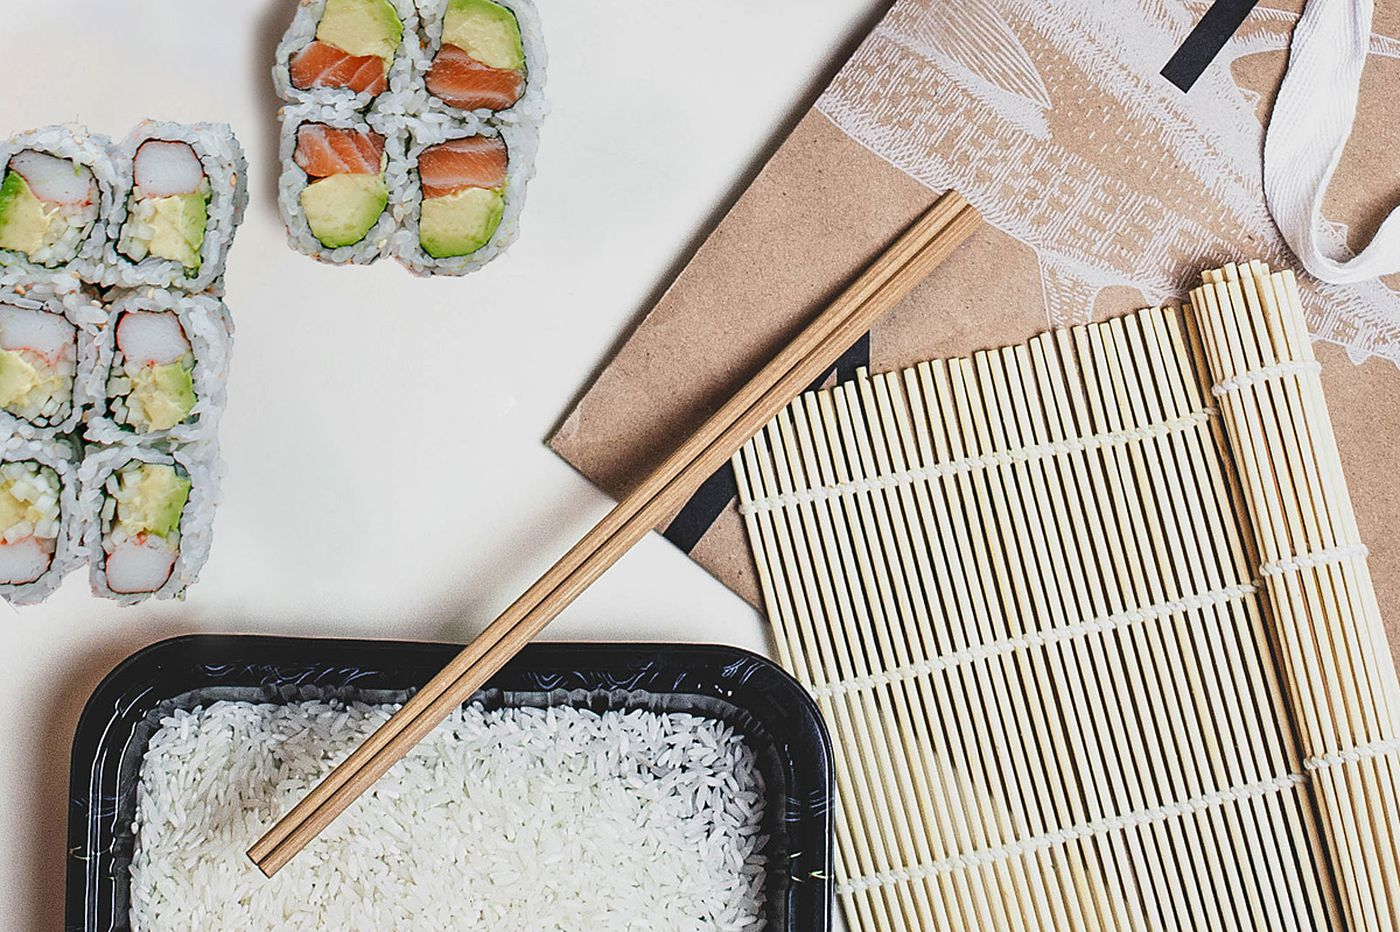 Roll with it: Sushi chef selling DIY kits and will lead a class on Instagram